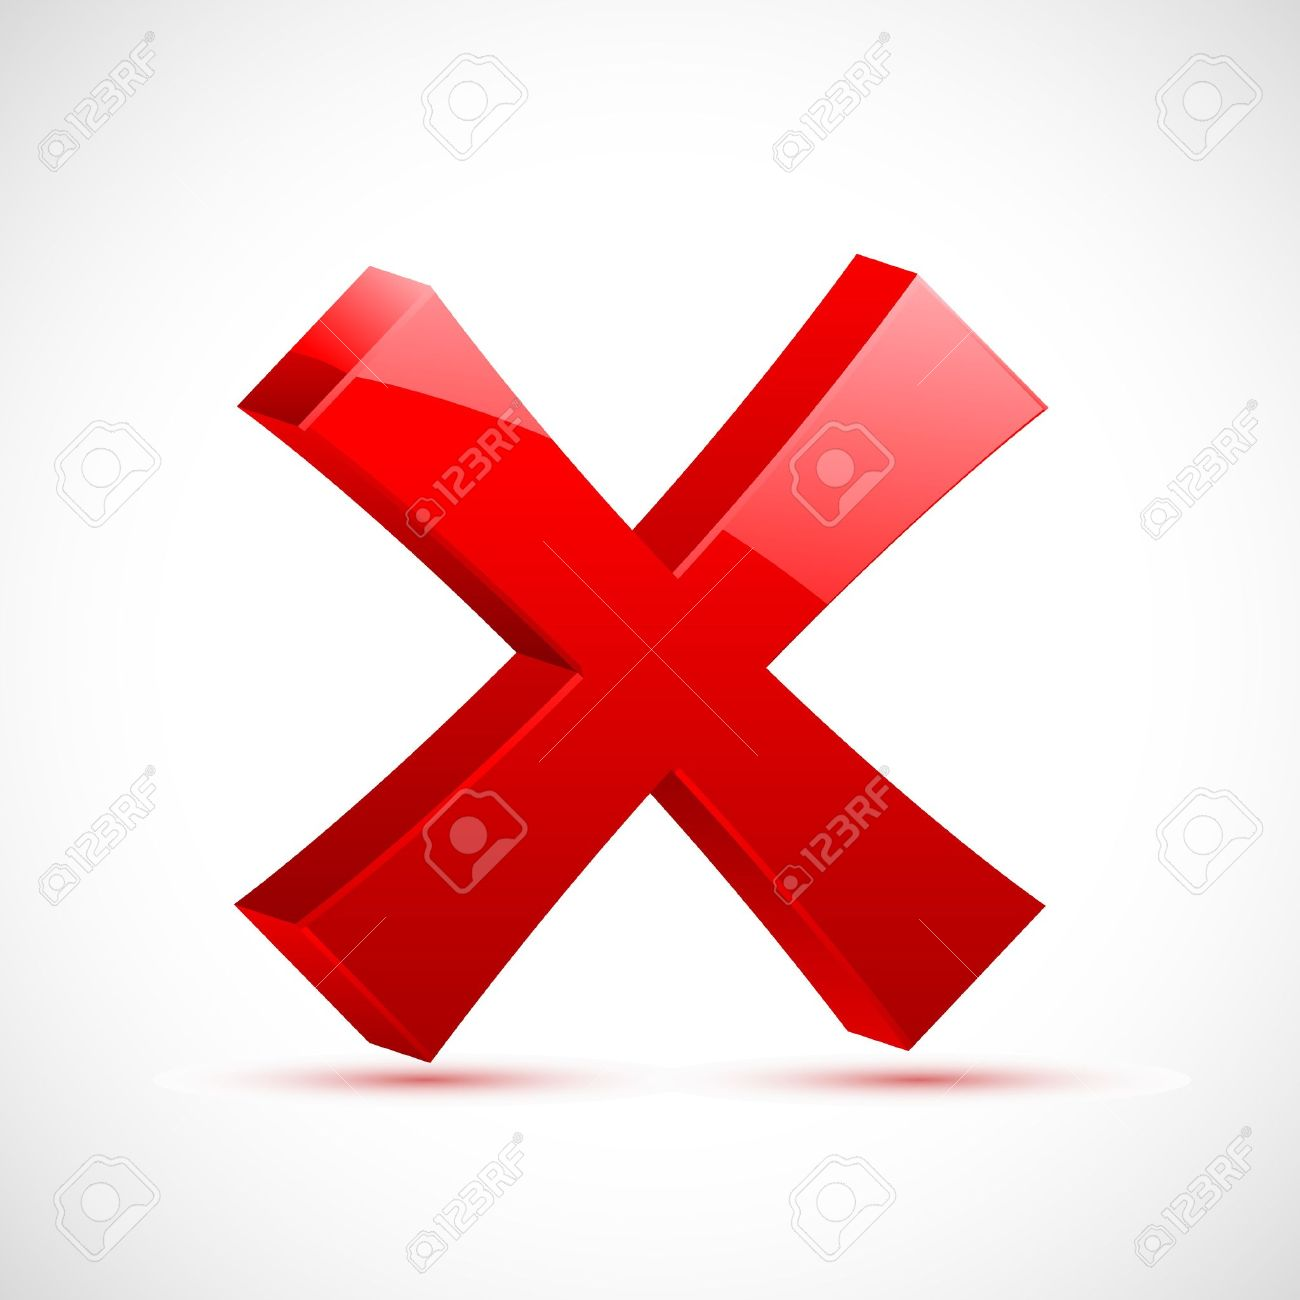 illustration of red cross mark on isolated background Stock Vector - 8778264